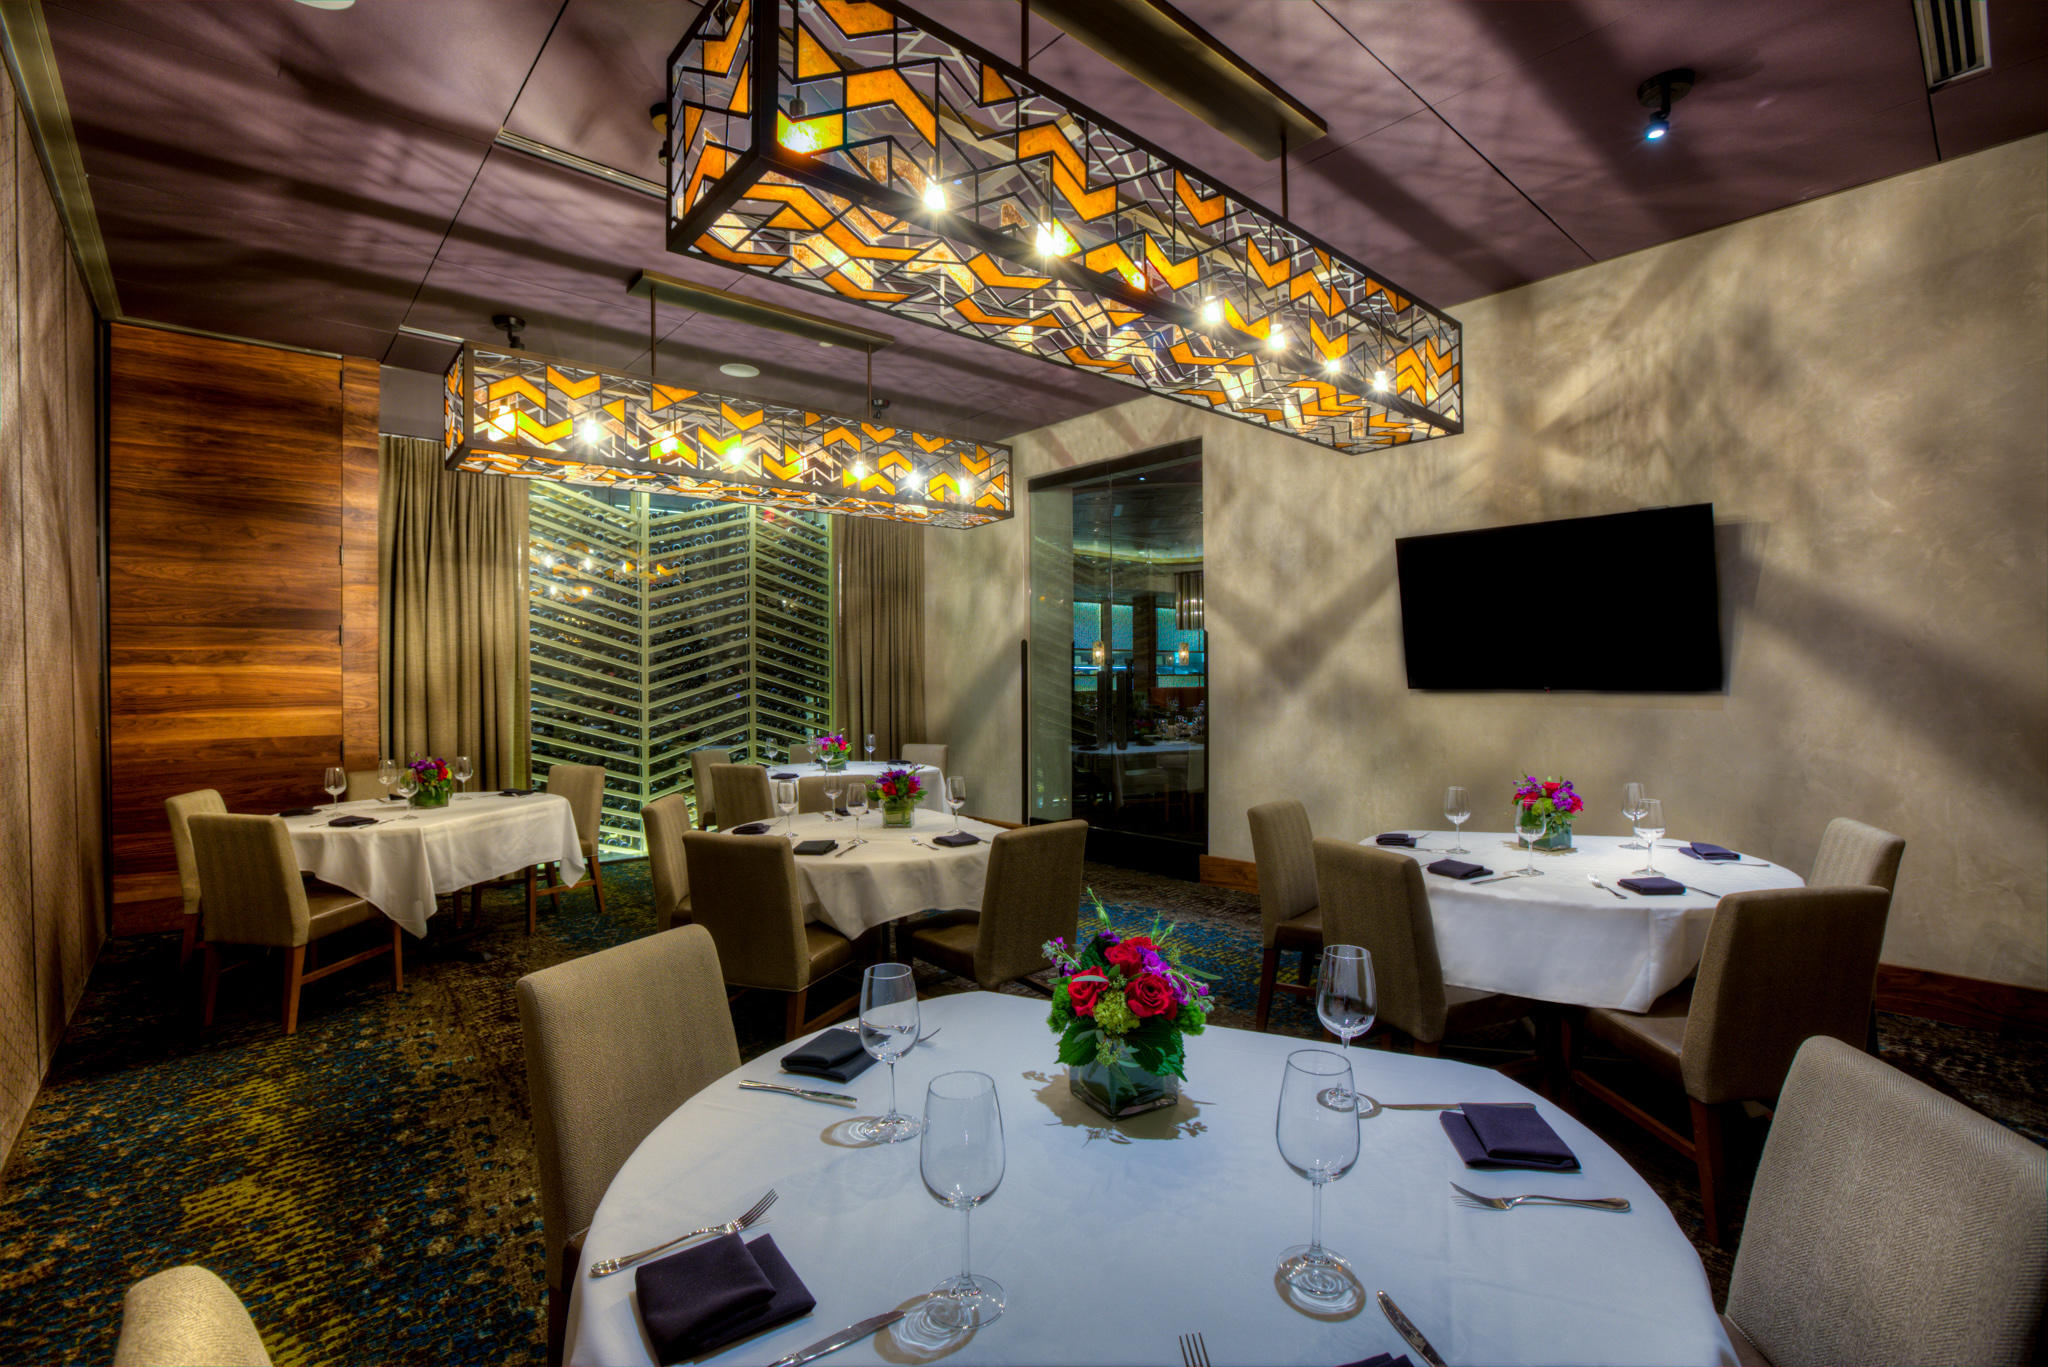 Del Frisco's Double Eagle Steak House Orlando OAK ROOM (HALF CELLAR) private dining room